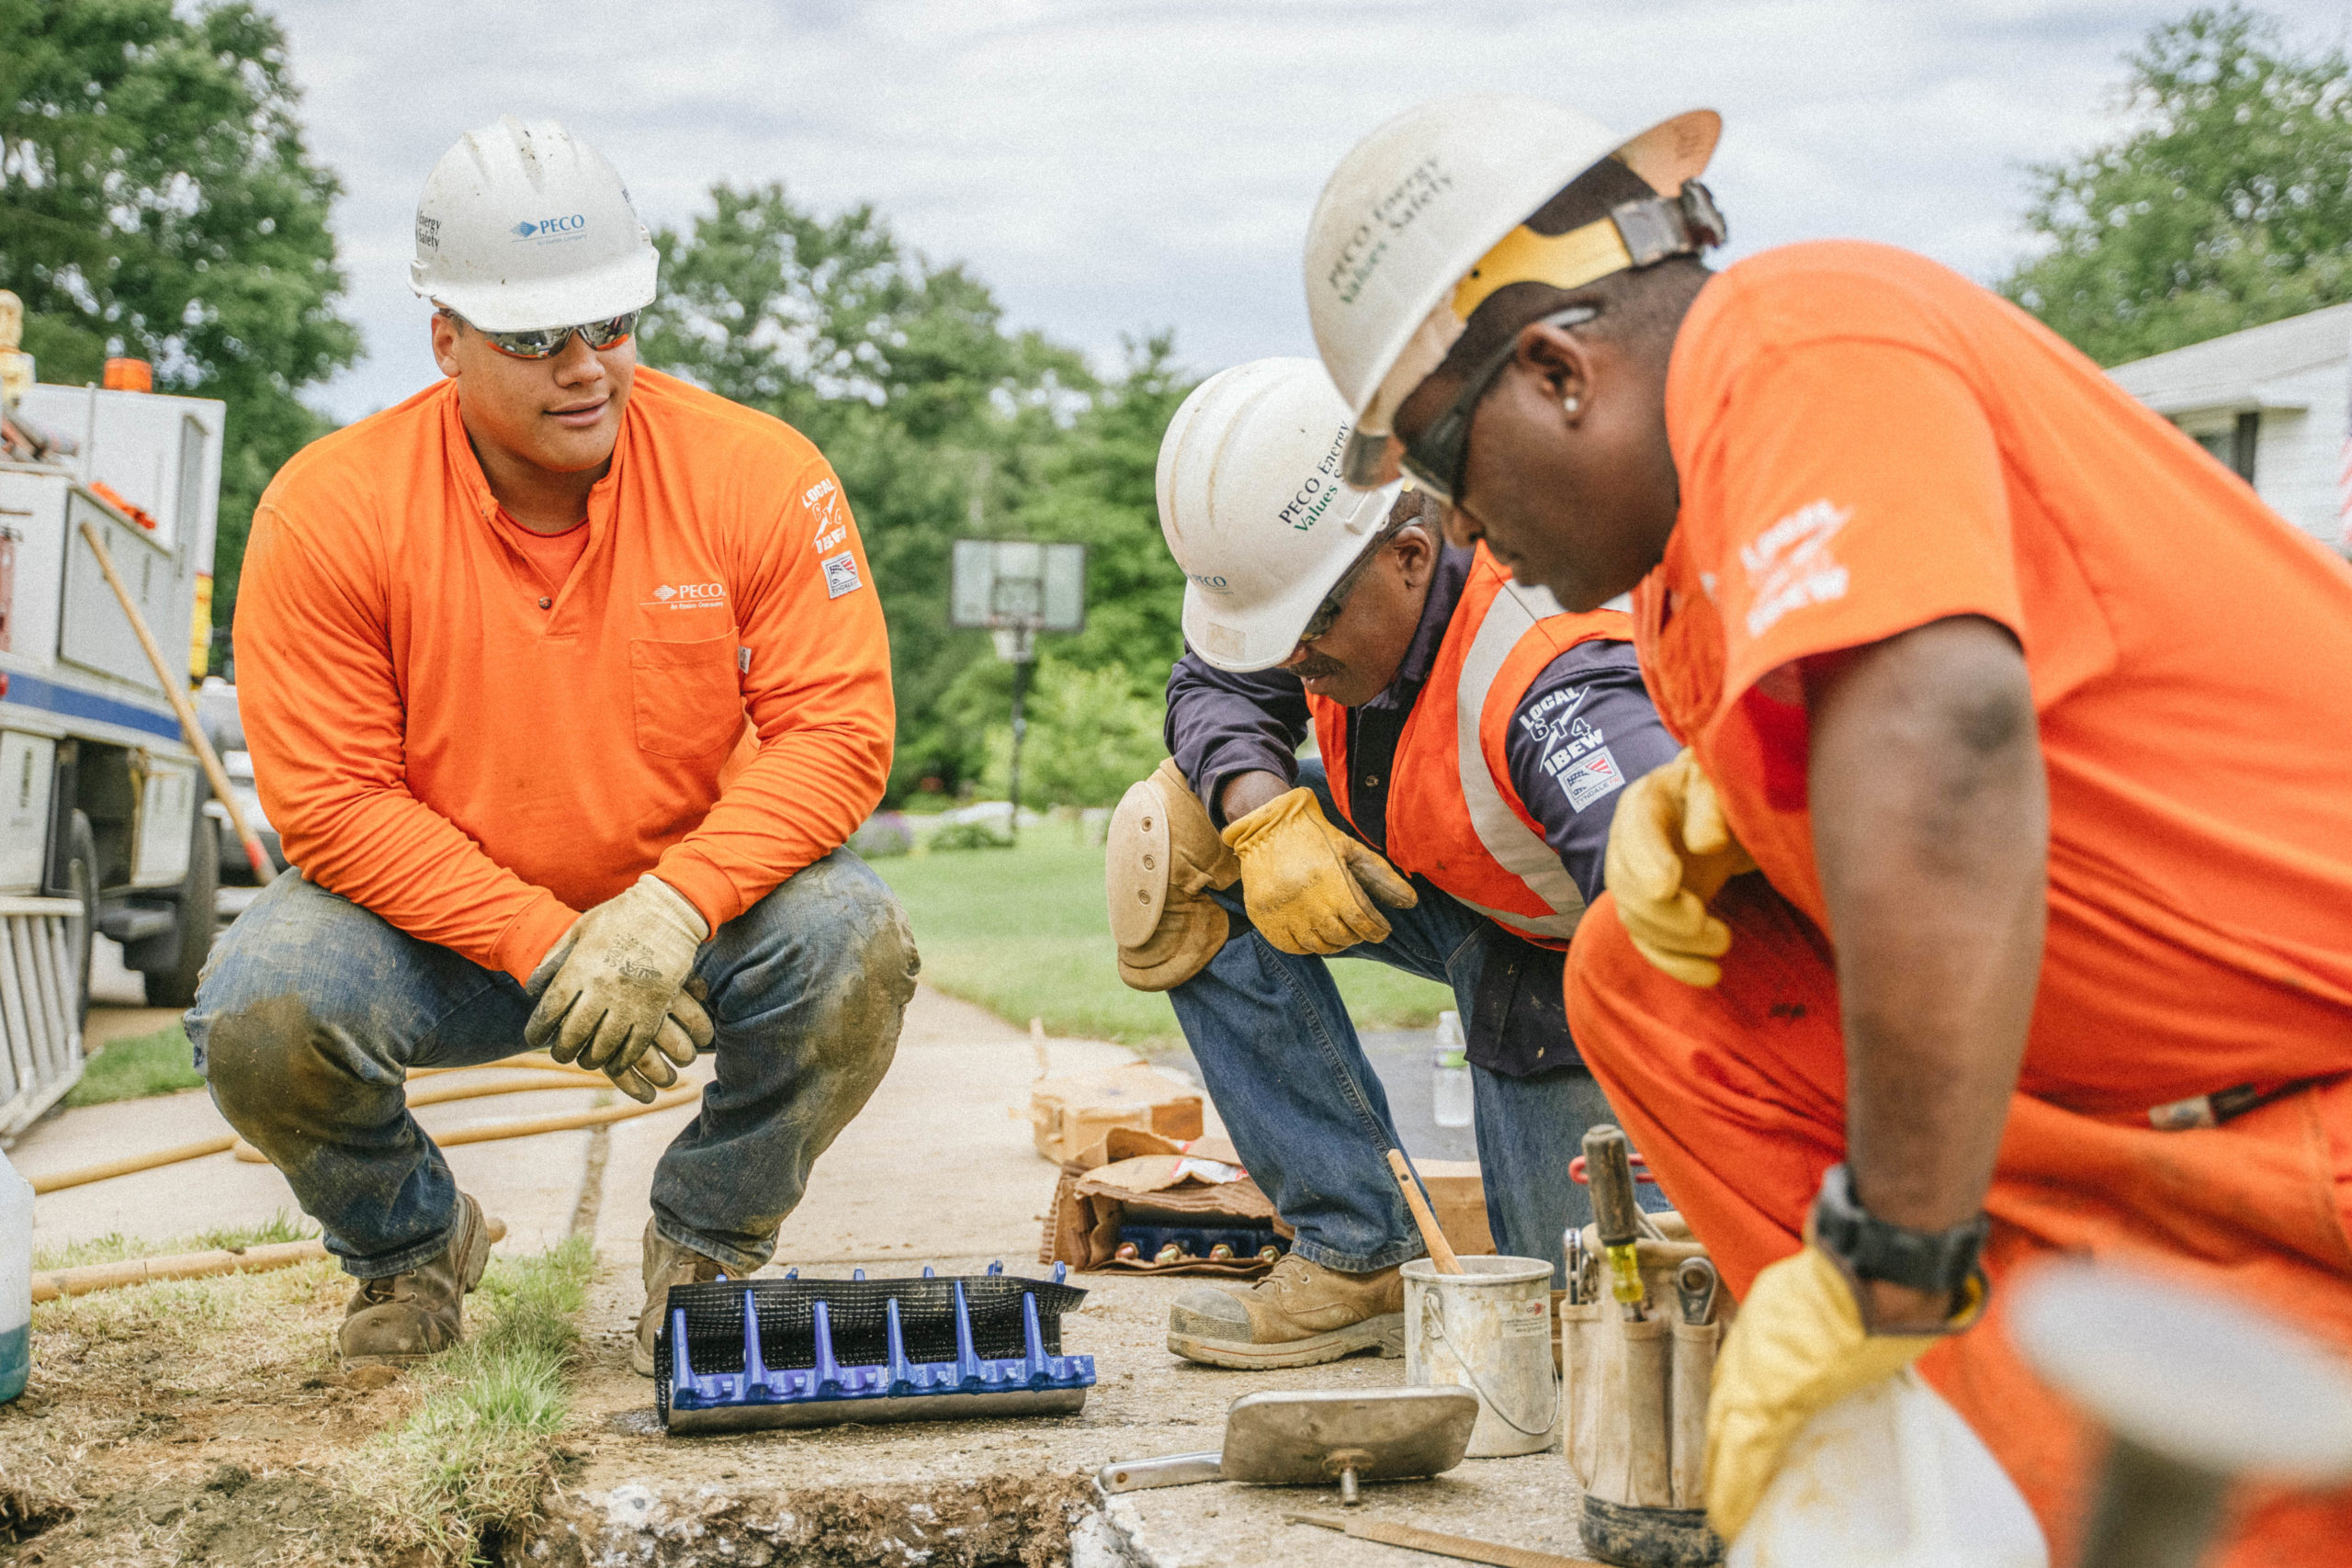 PECO celebrates gas workers in honor of Natural Gas Utility Workers' Day